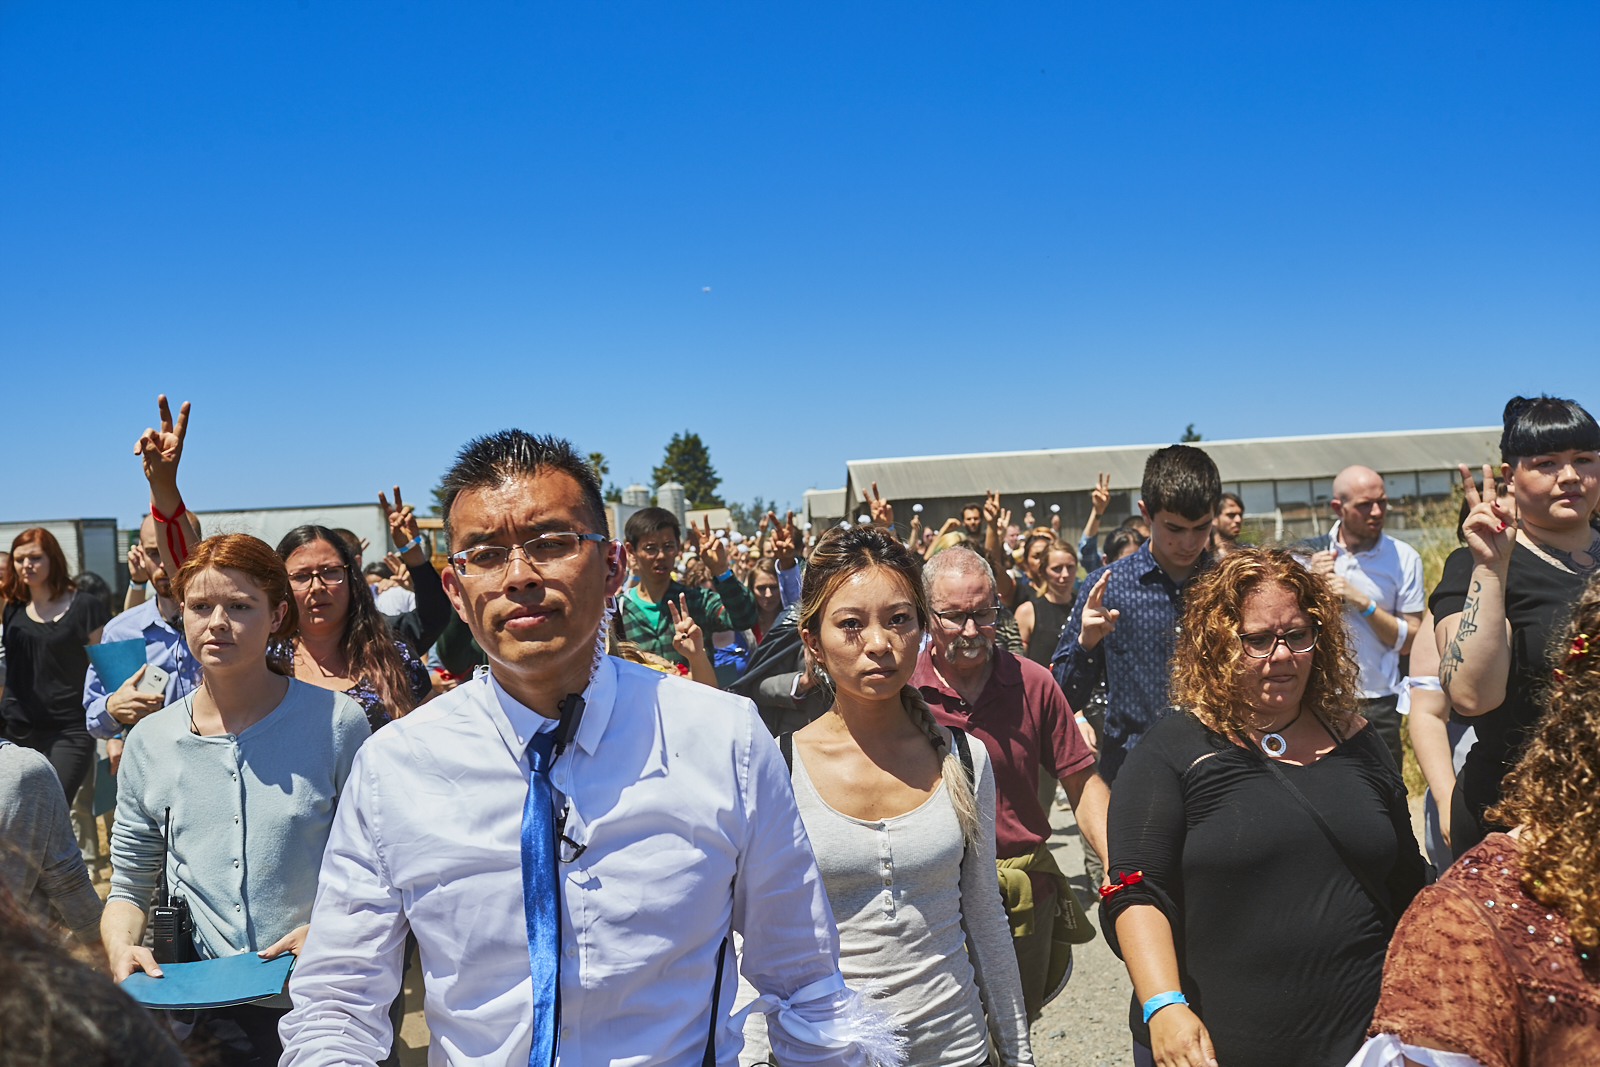 DxE activists led by Wayne Hsiung at mass open rescue on Petaluma farm in late May. Photo by Michael Goldberg